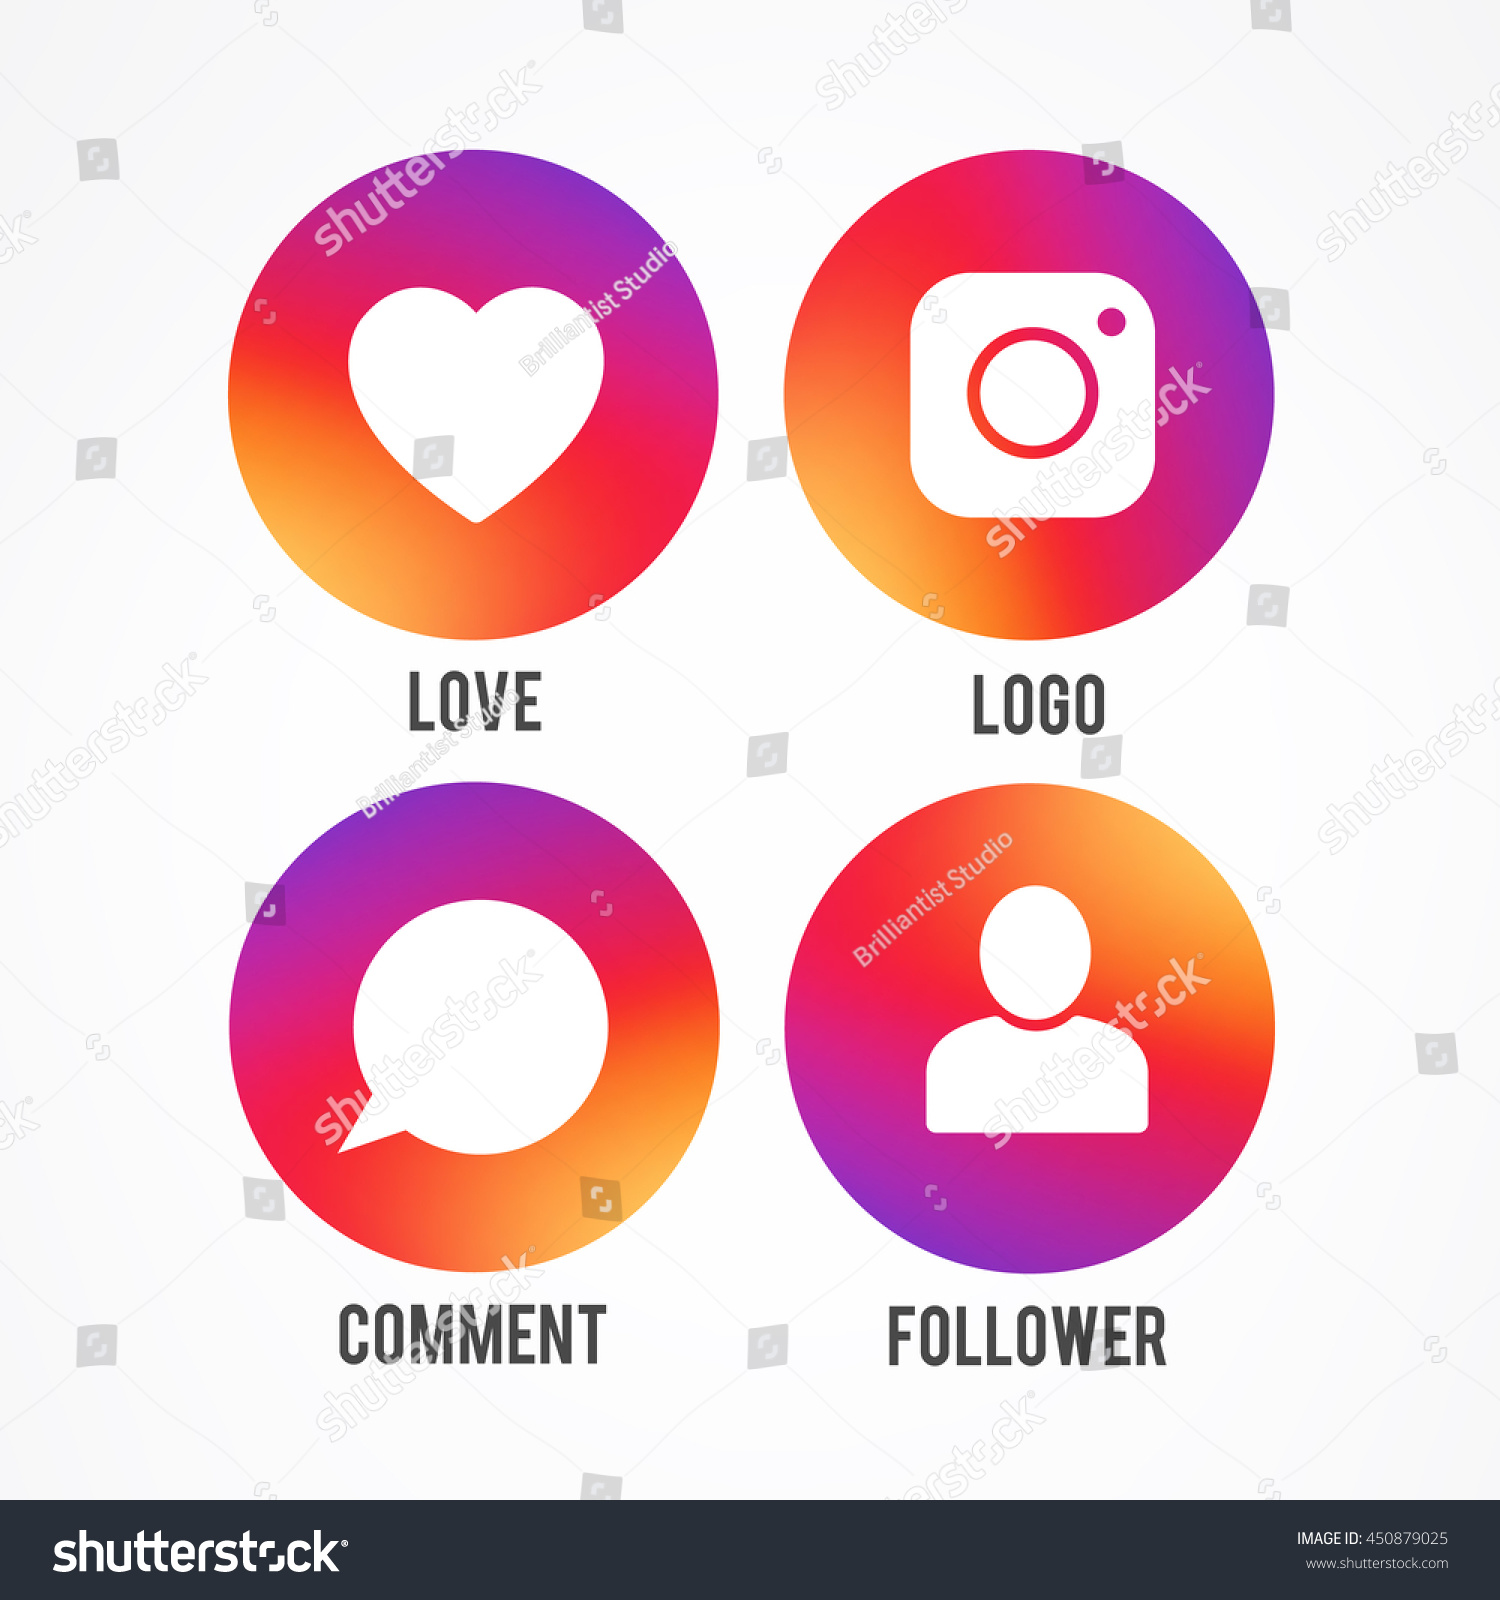 Vector Illustration Instagram: Smooth Color Gradient Icon Template Set Inspried By